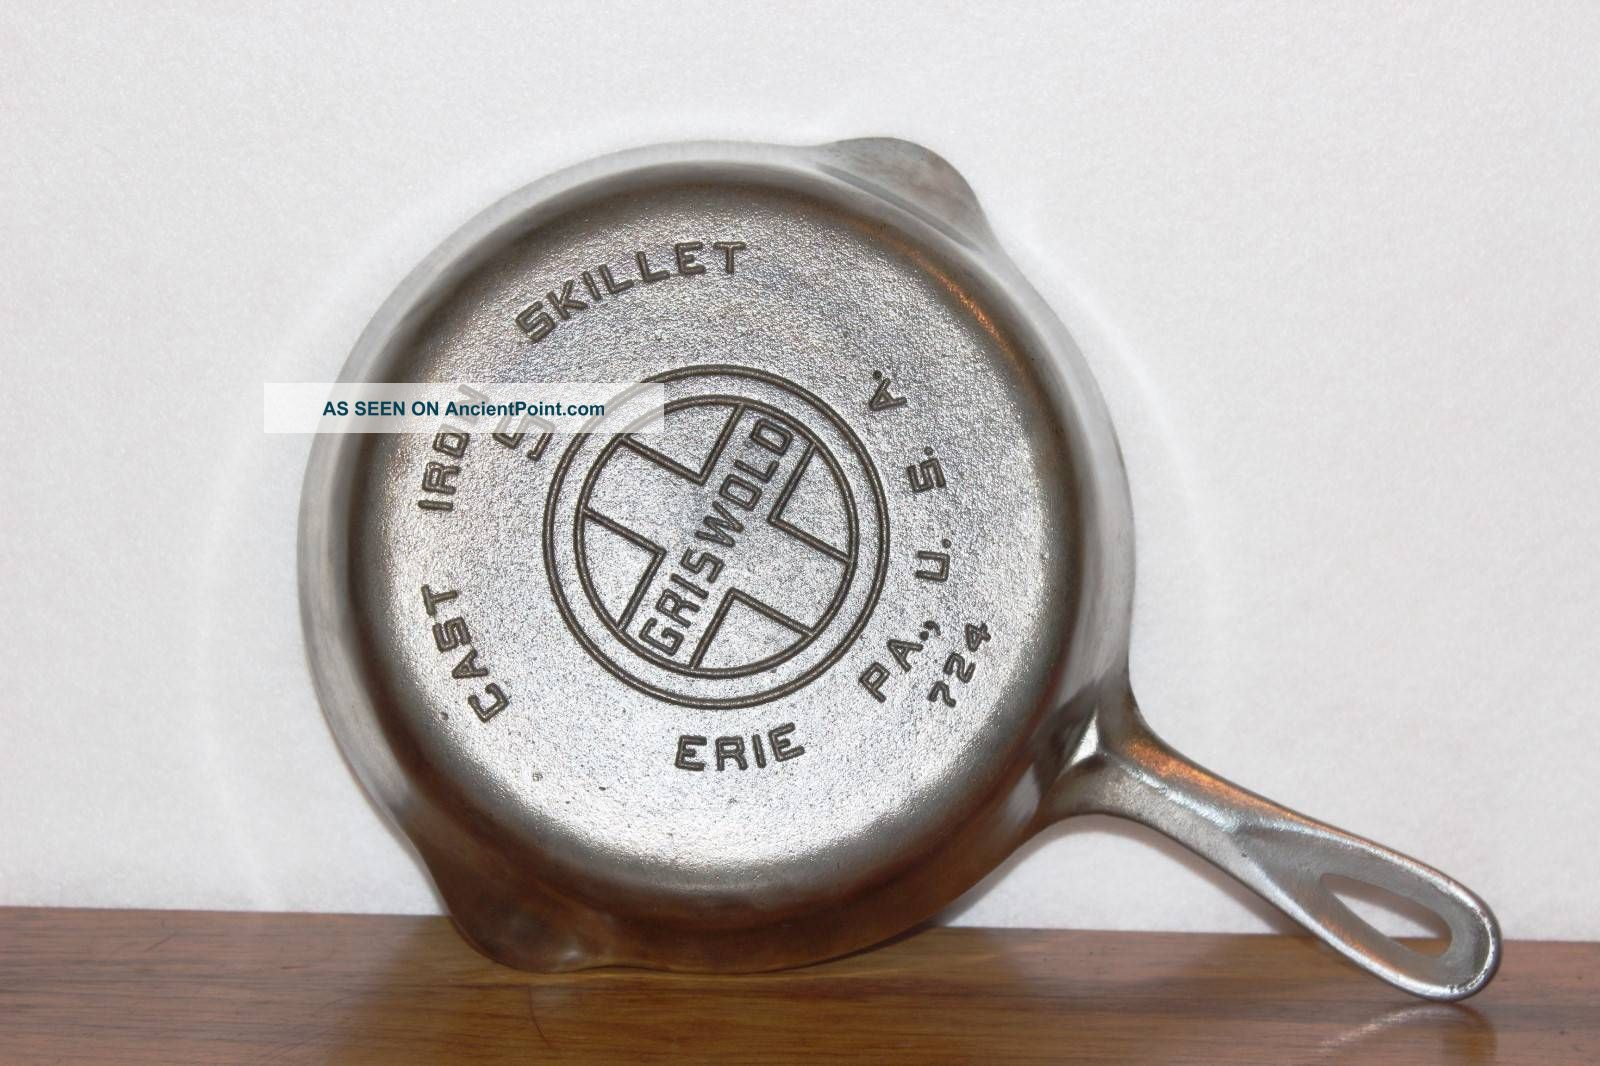 Vintage 1930 - 1939 Griswold P/n 724 Size No.  5 Chrome Plated Cast Iron Skillet Other Antique Home & Hearth photo